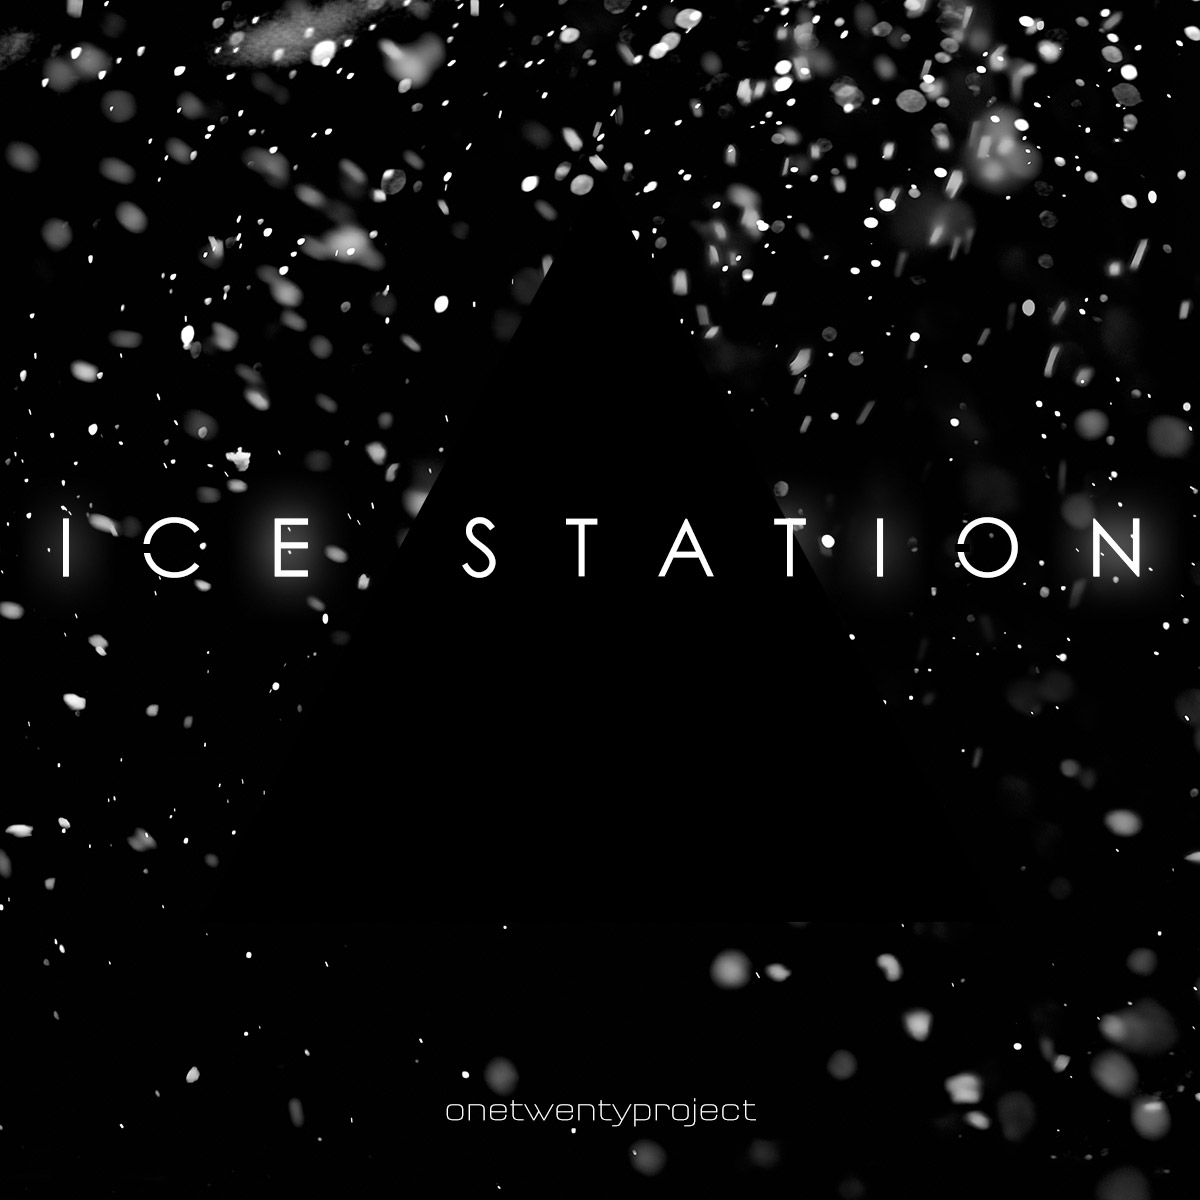 Ice Station - New Demo Track by 120 Project